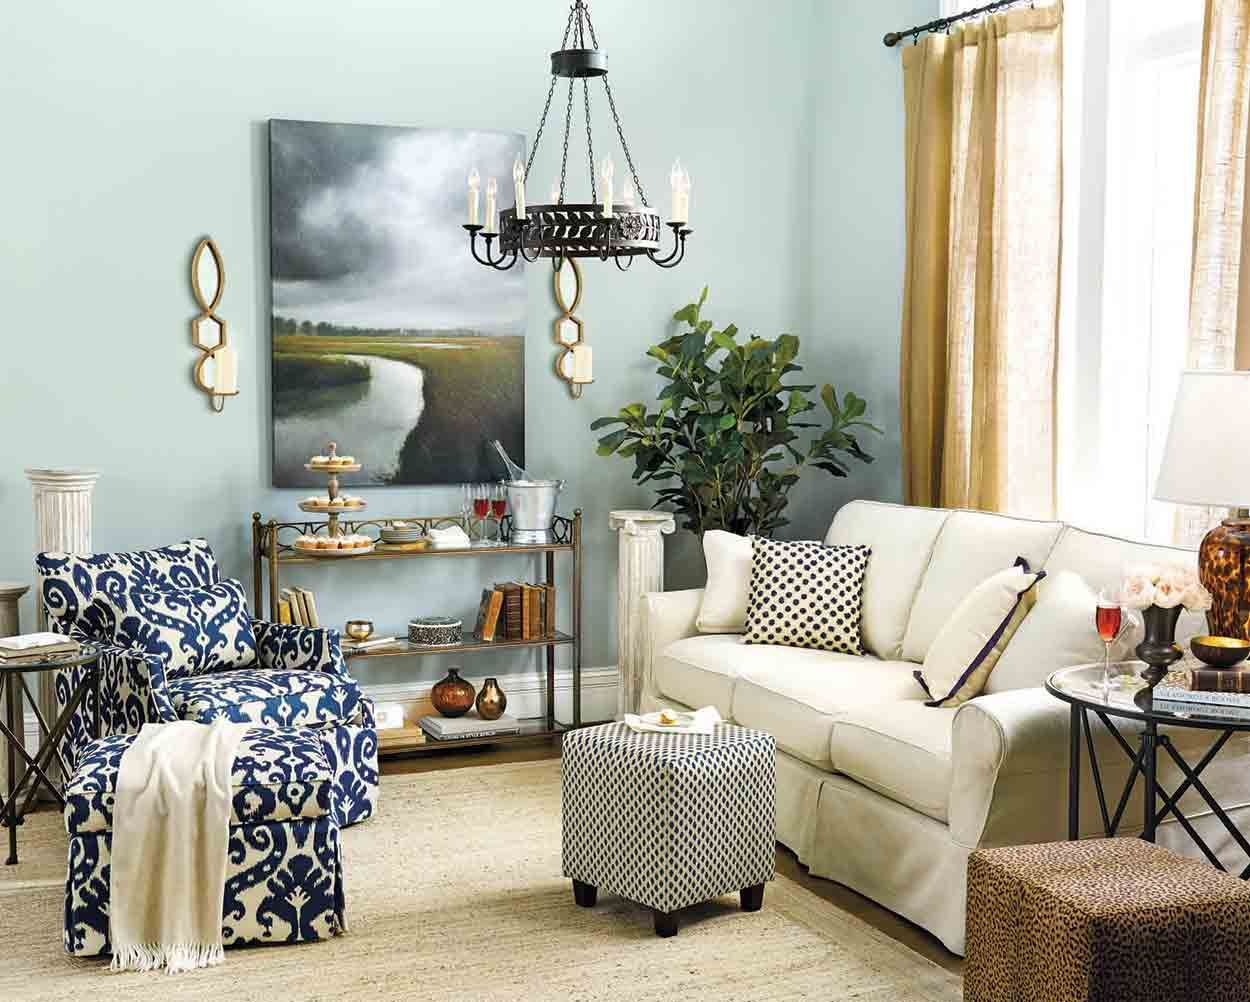 living rooms ideas for decorating bedroom wall colors on living room colors for walls id=44364